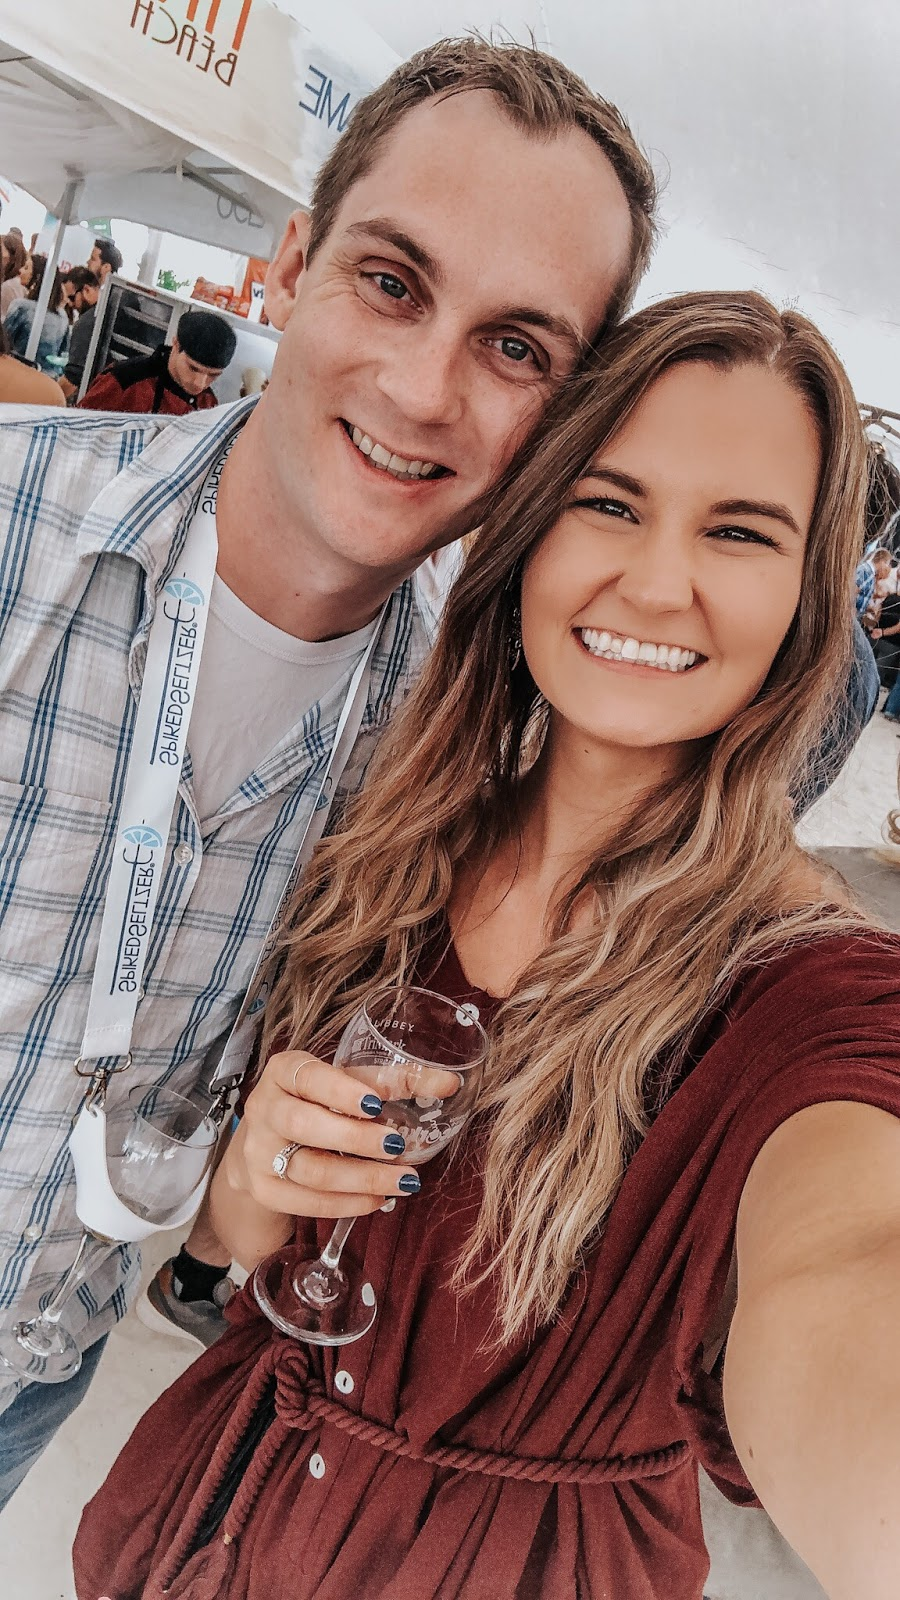 Tampa Bay blogger at Clearwater Beach's Uncorked Food and Wine festival